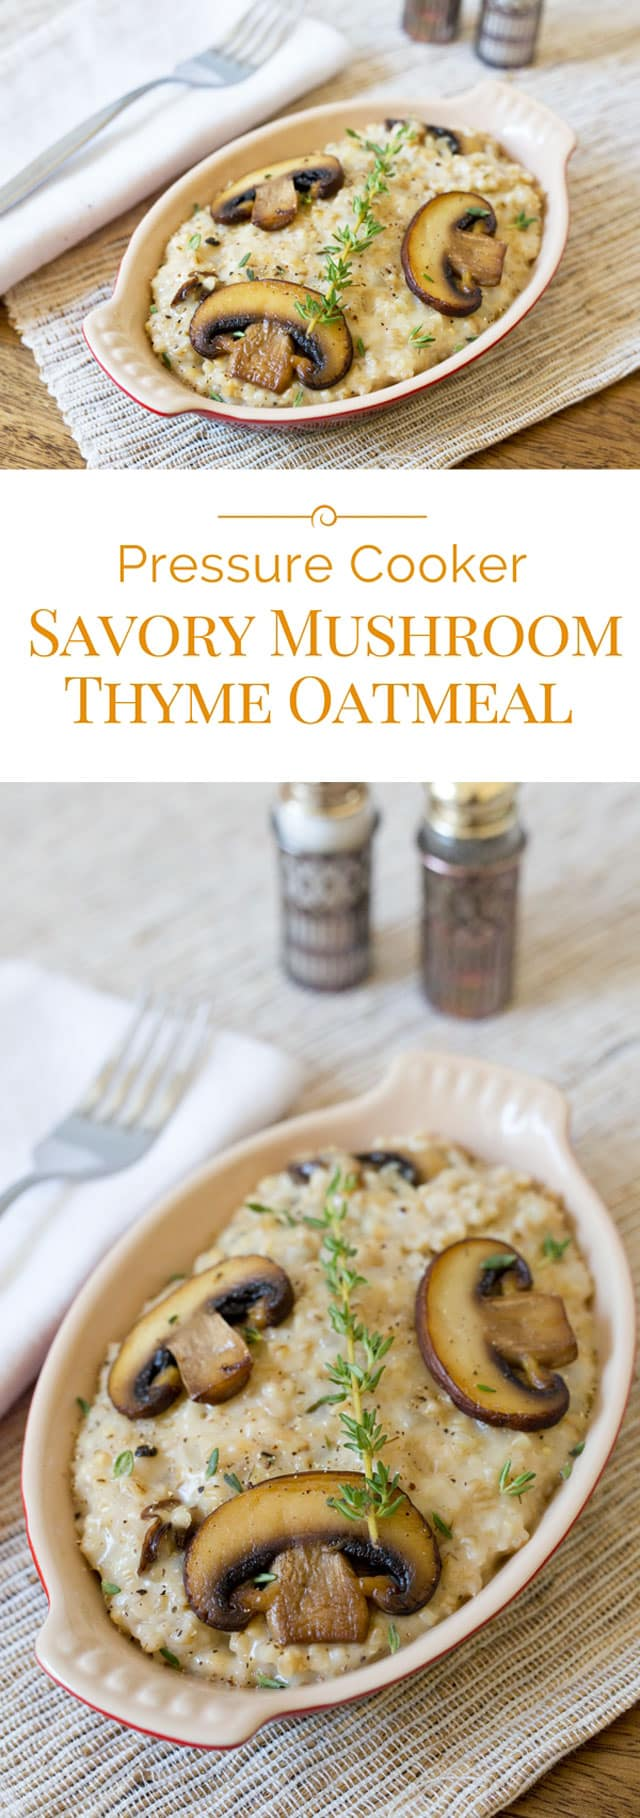 Savory Mushroom Thyme Oatmeal is a creamy, cheesy, decadently delicious dish. If you love risotto, you're going to go crazy for this Insta Pot pressure cooker oatmeal recipe. #pressurecooker #instantpot #sidedishrecipe via @PressureCook2da